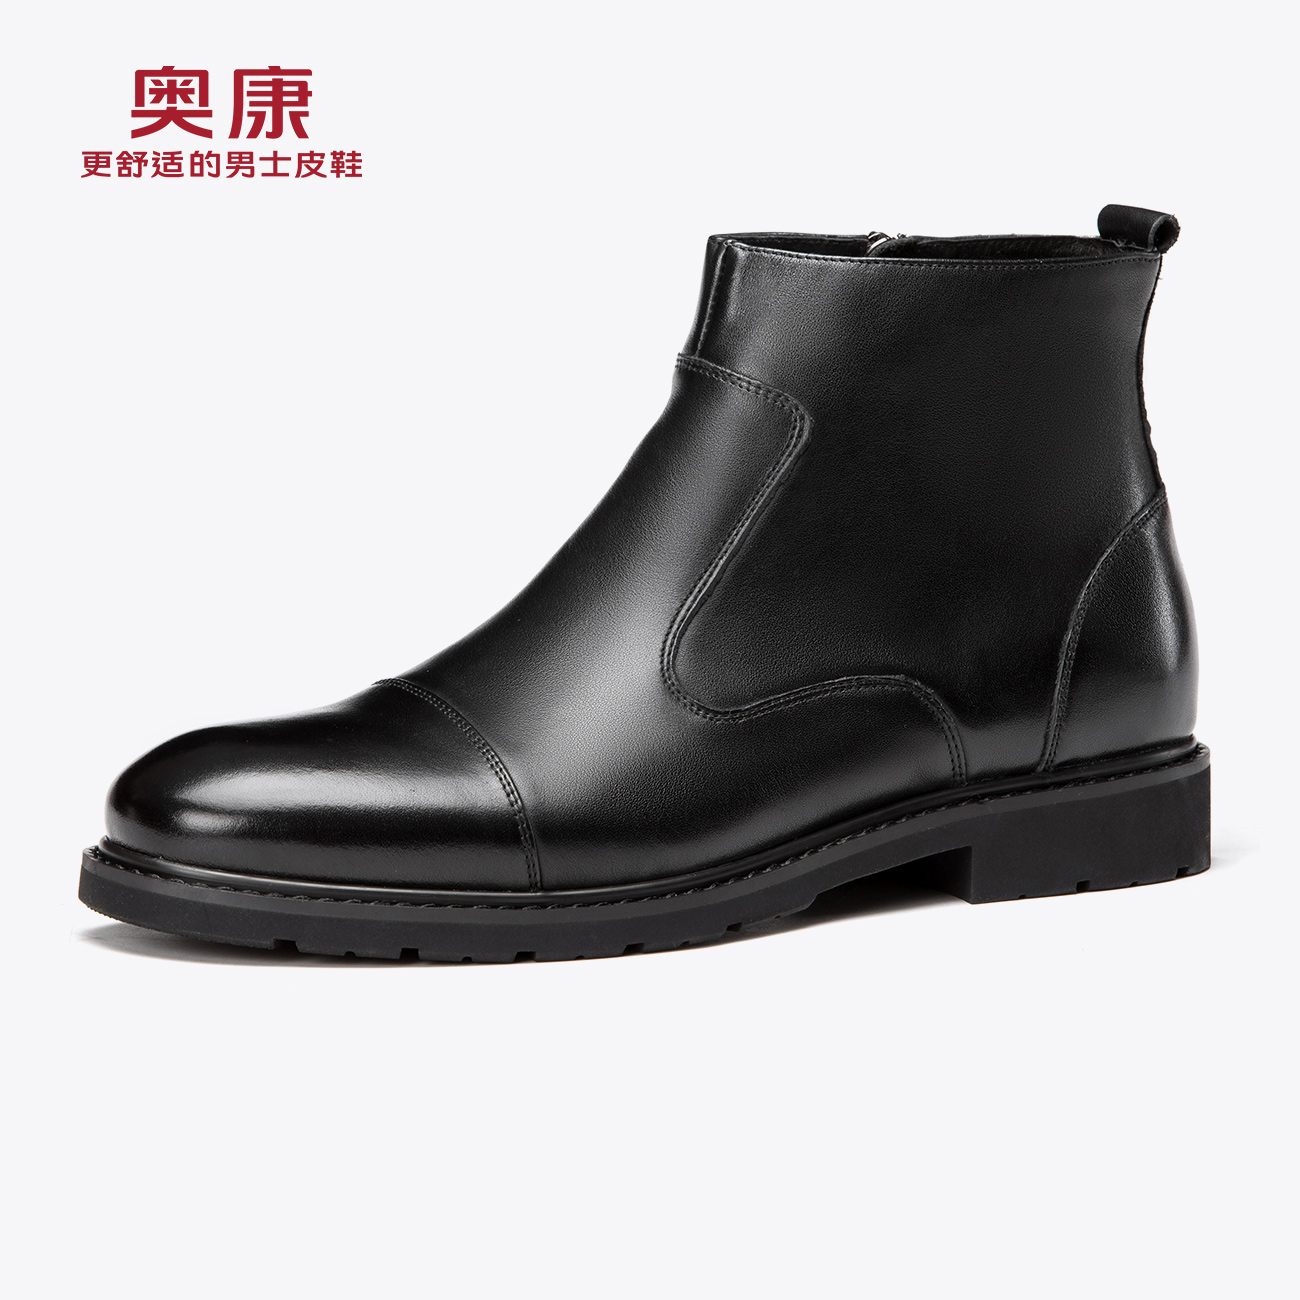 Aokang mens shoes 2021 new winter Brock Chelsea boots with cowhide n mens boots in Europe, America and England